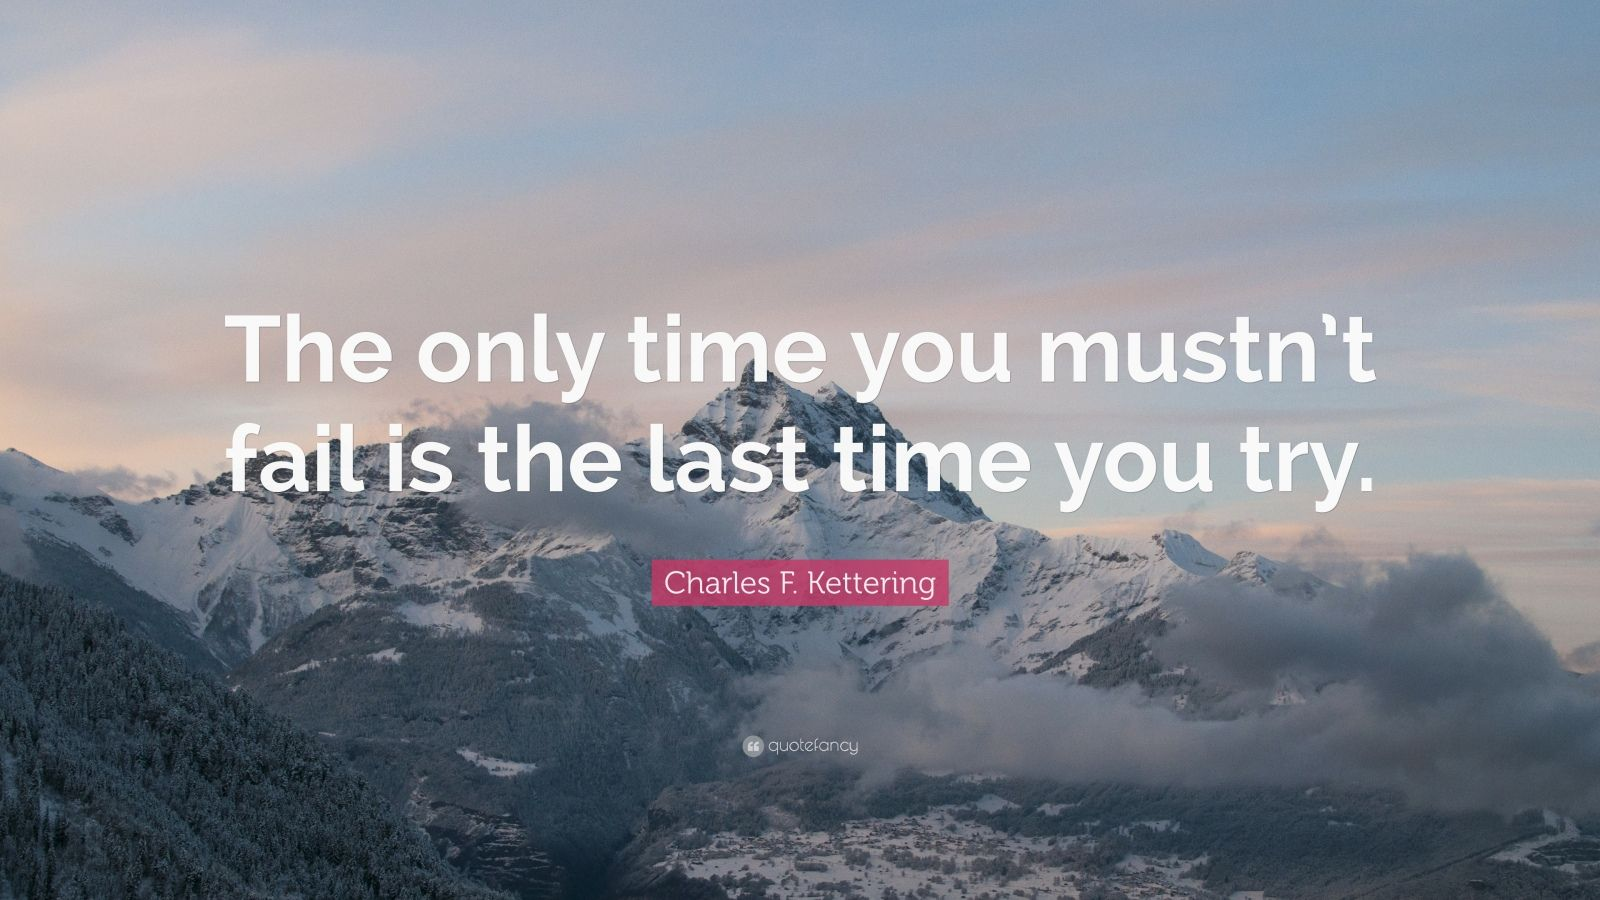 """Charles F. Kettering Quote: """"The only time you mustn't fail is the last time you try."""""""